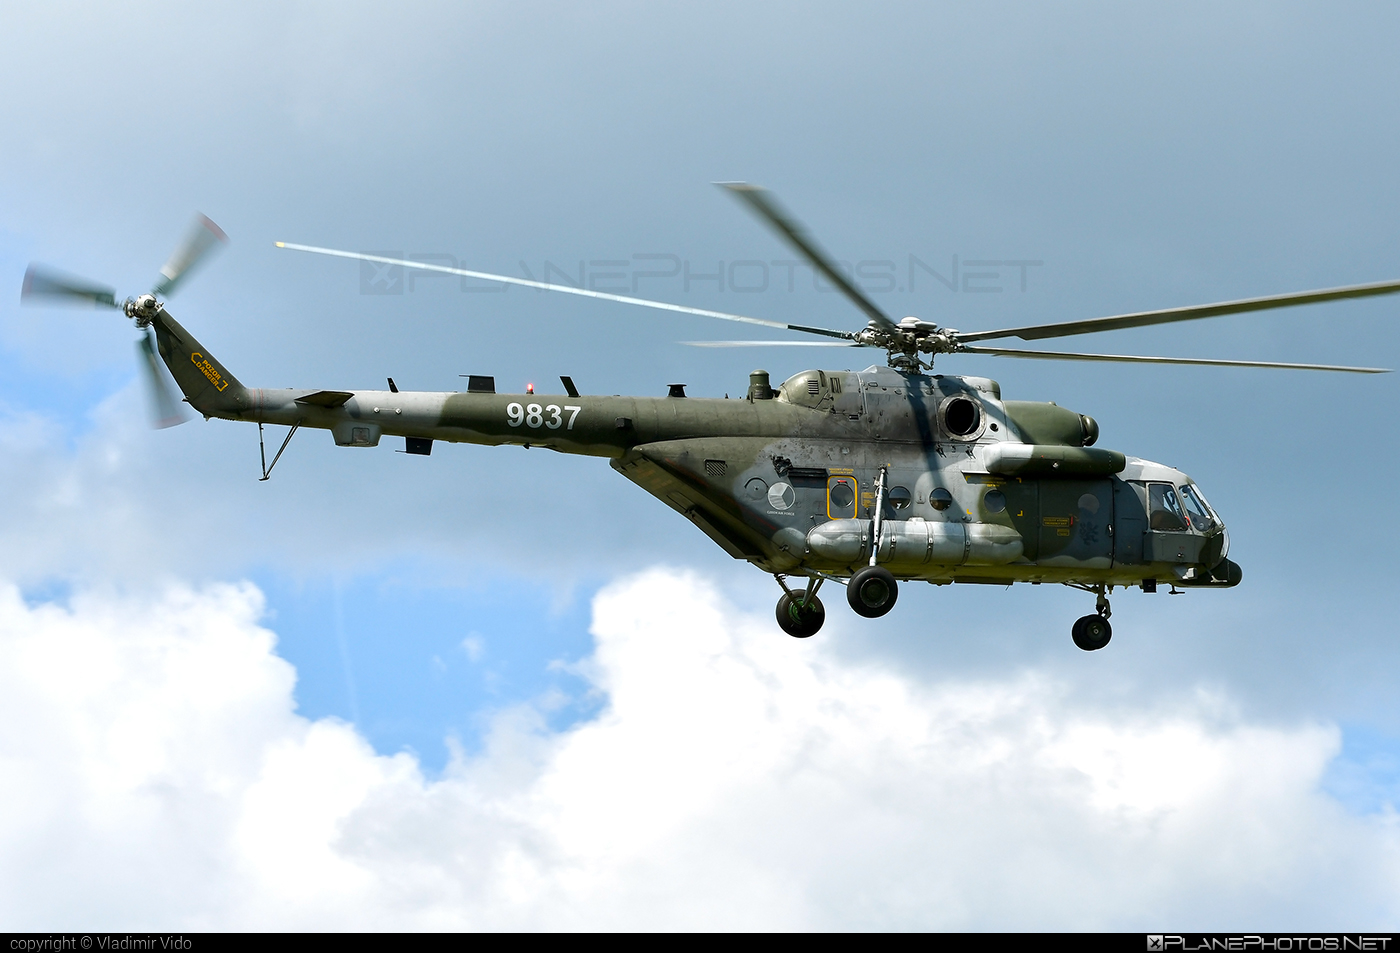 Mil Mi-171Sh - 9837 operated by Vzdušné síly AČR (Czech Air Force) #czechairforce #mi171 #mi171sh #mil #mil171 #milhelicopters #siaf2019 #vzdusnesilyacr